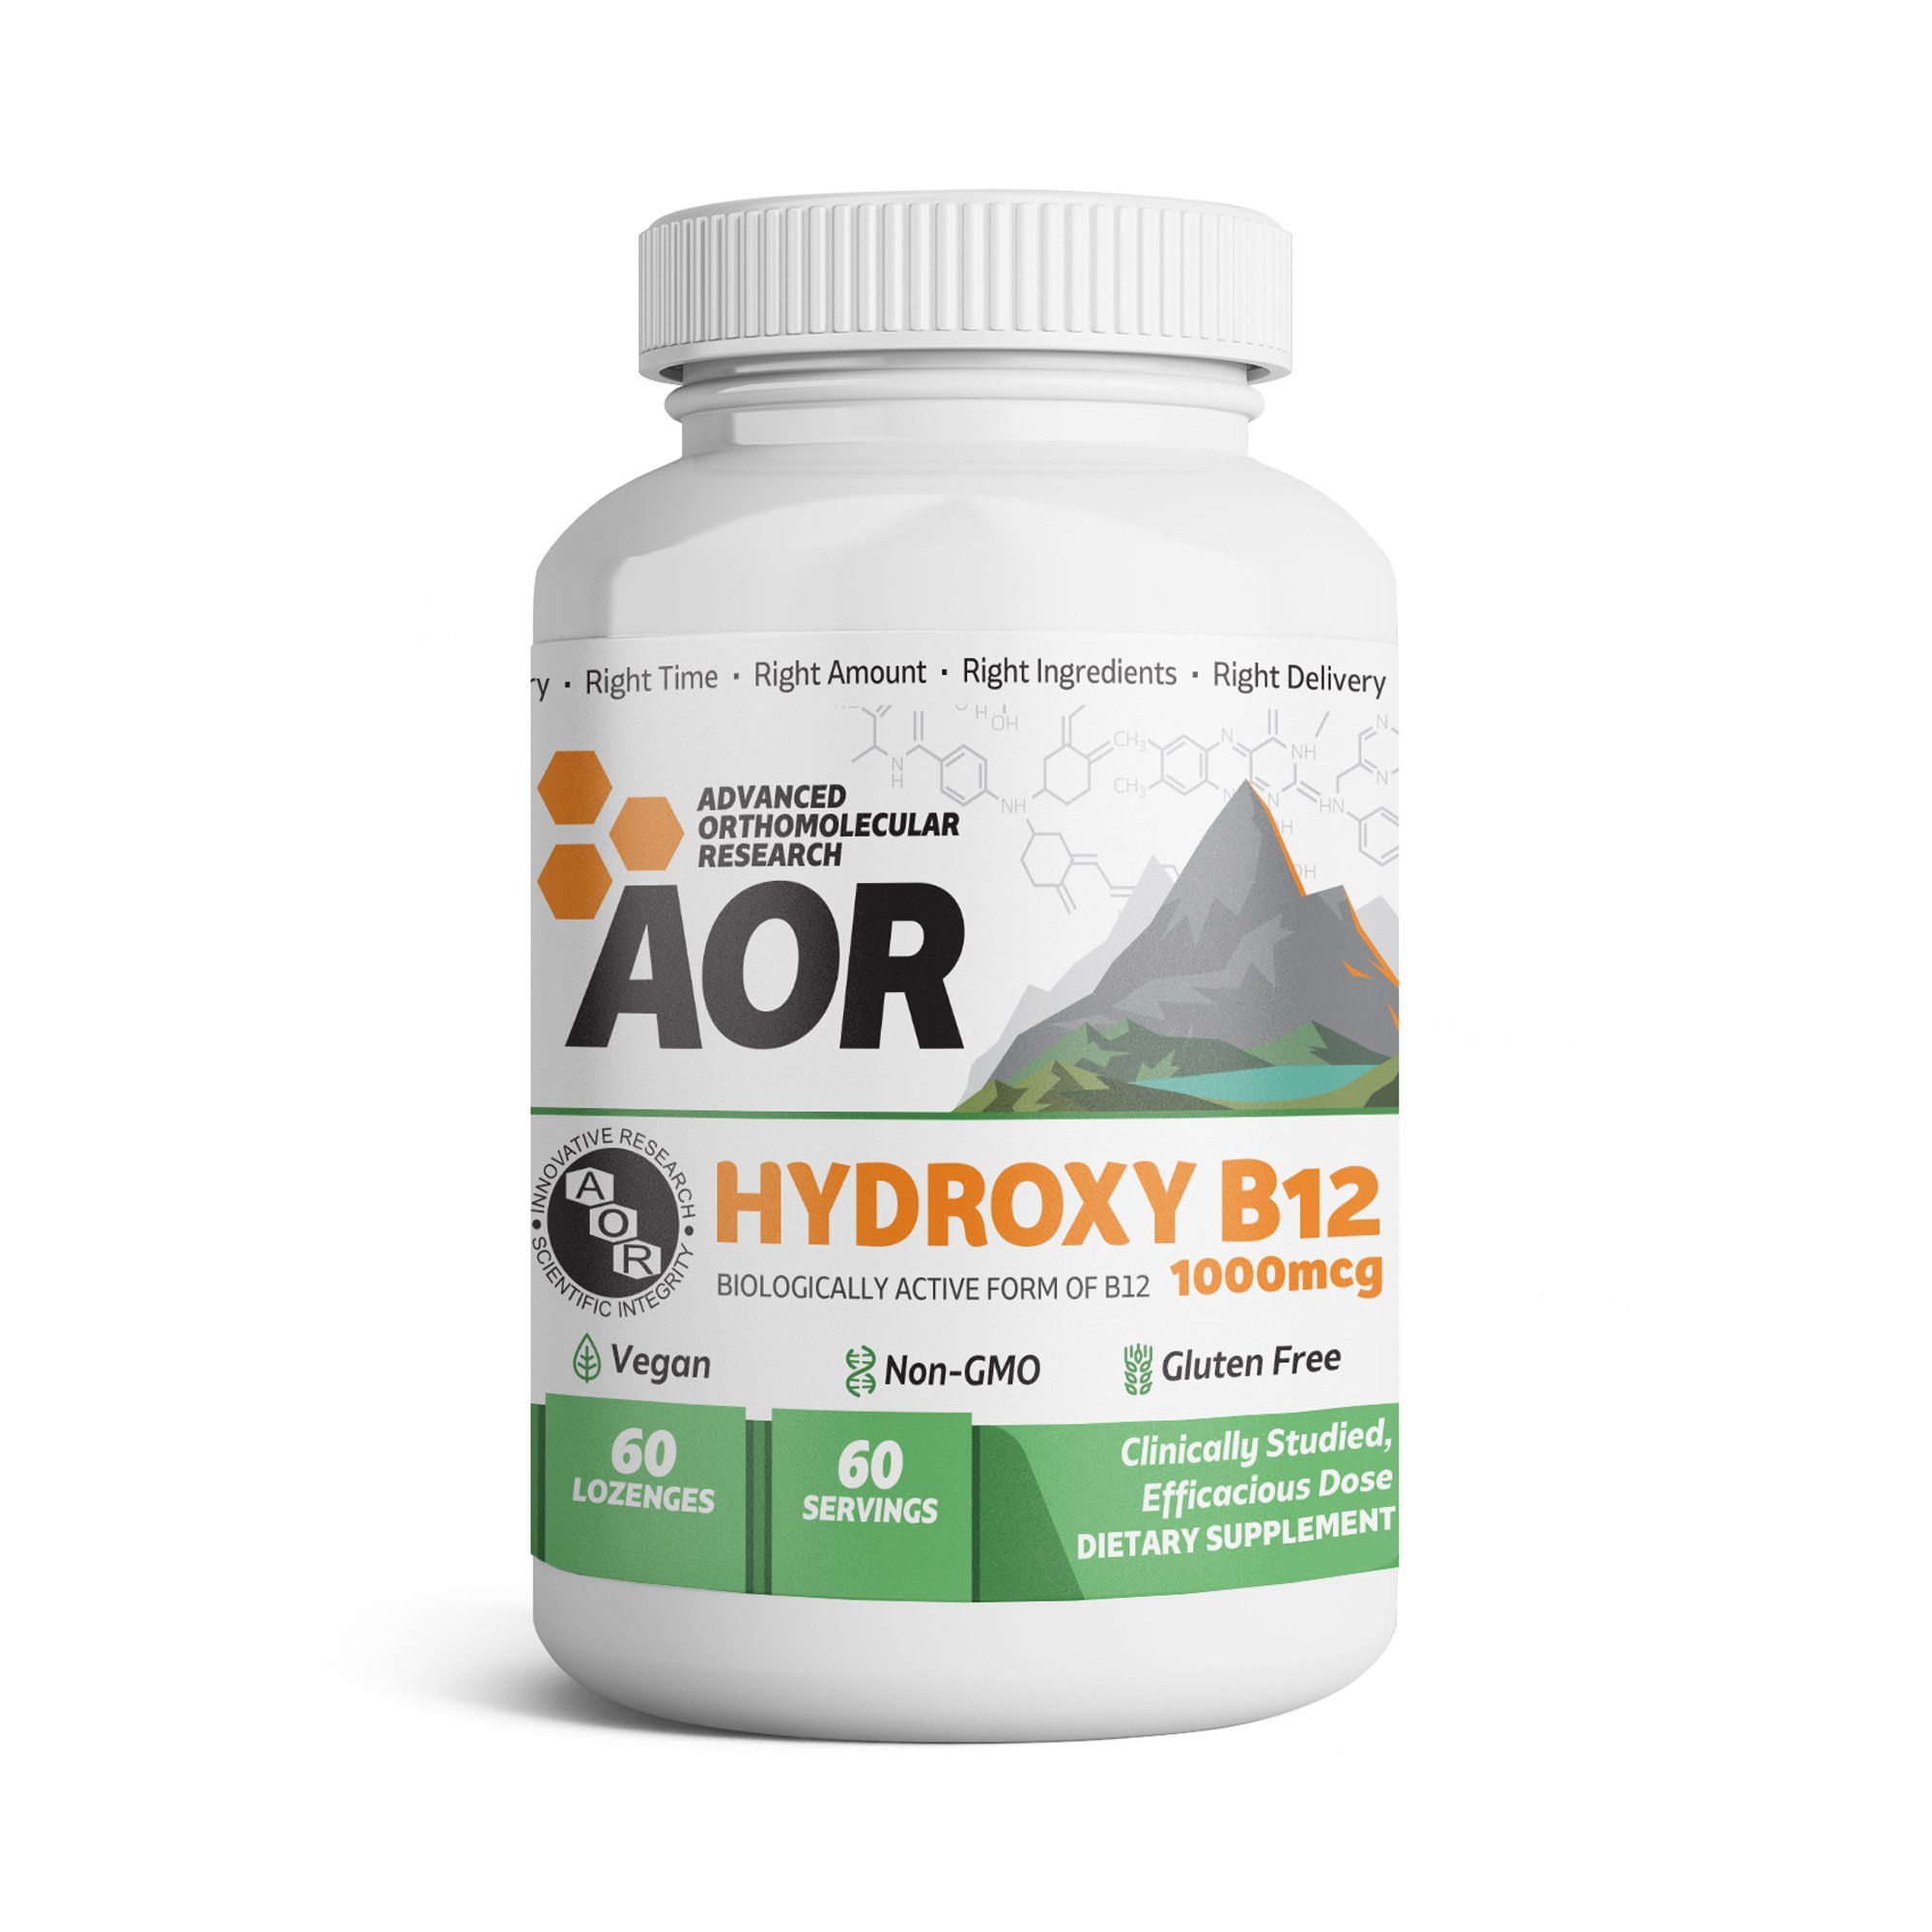 AOR - Hydroxy B12, Methylation Support for Brain, Nerve Health, and Detoxification with Activated B12, Vegan, Non-GMO, Gluten-Free, 60 Lozenges